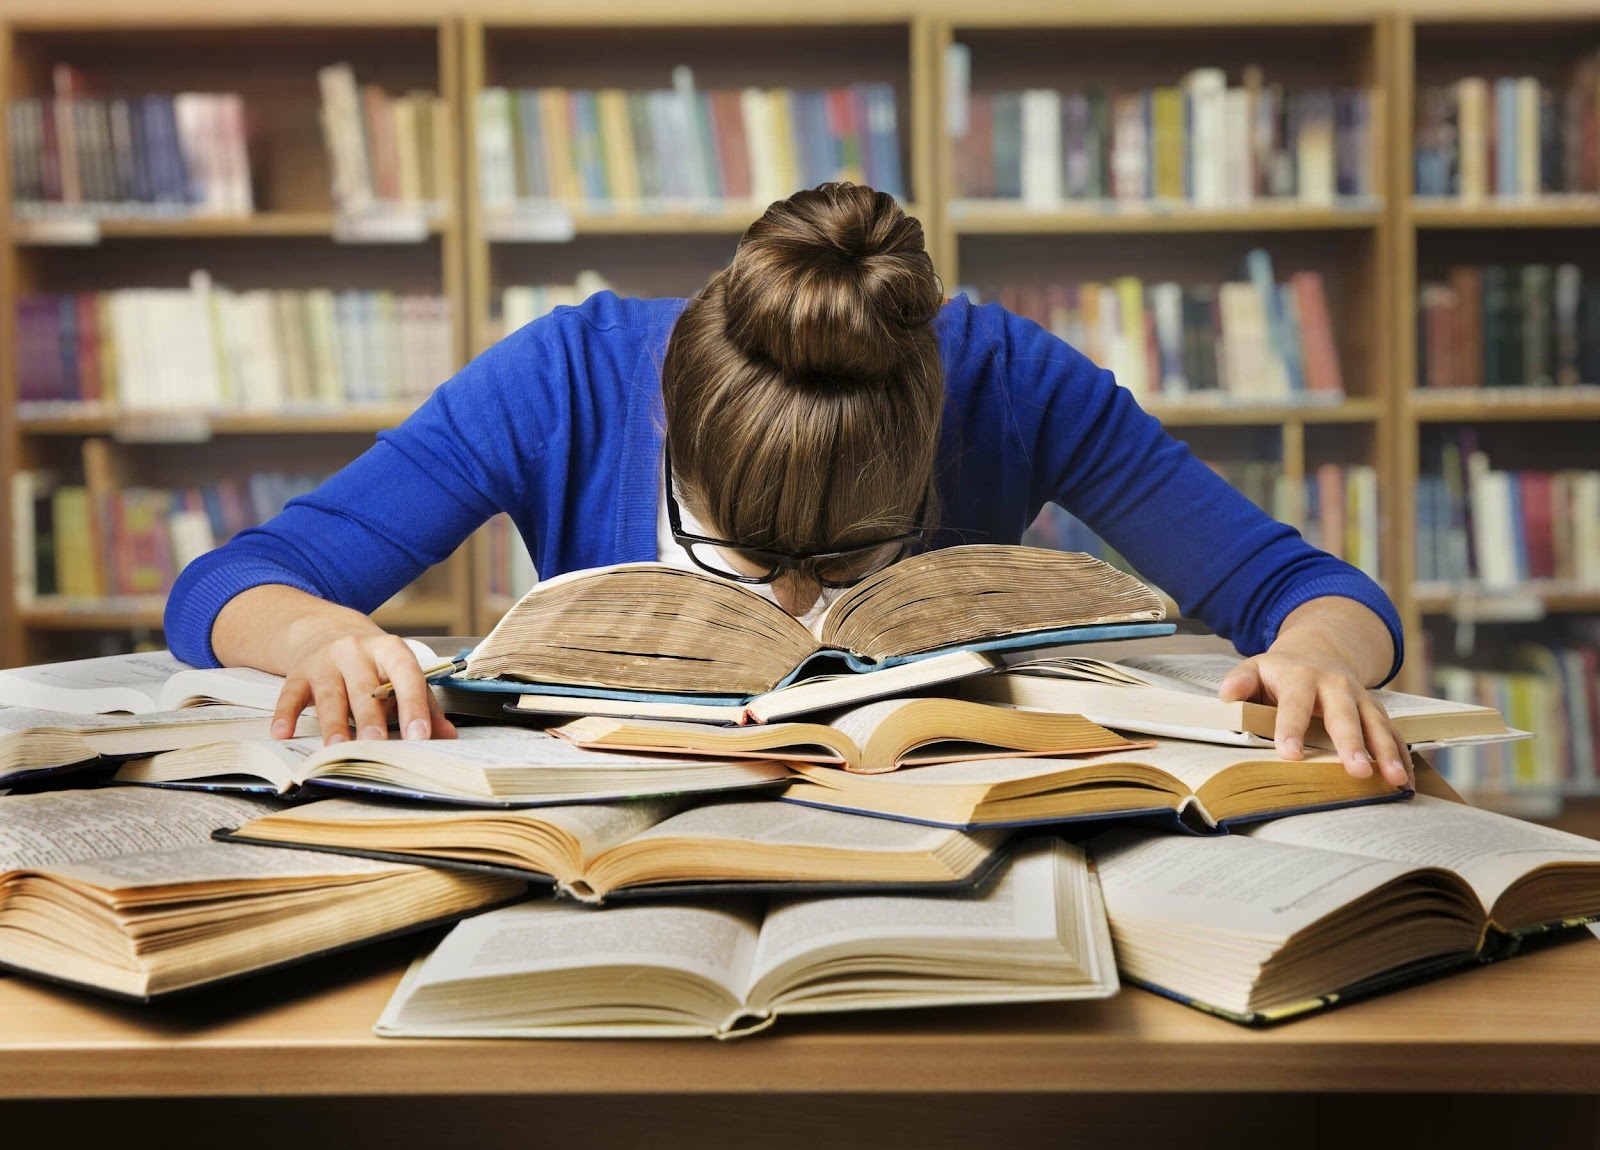 10 Poor Study Habits to Avoid - Tips for Effective Studying